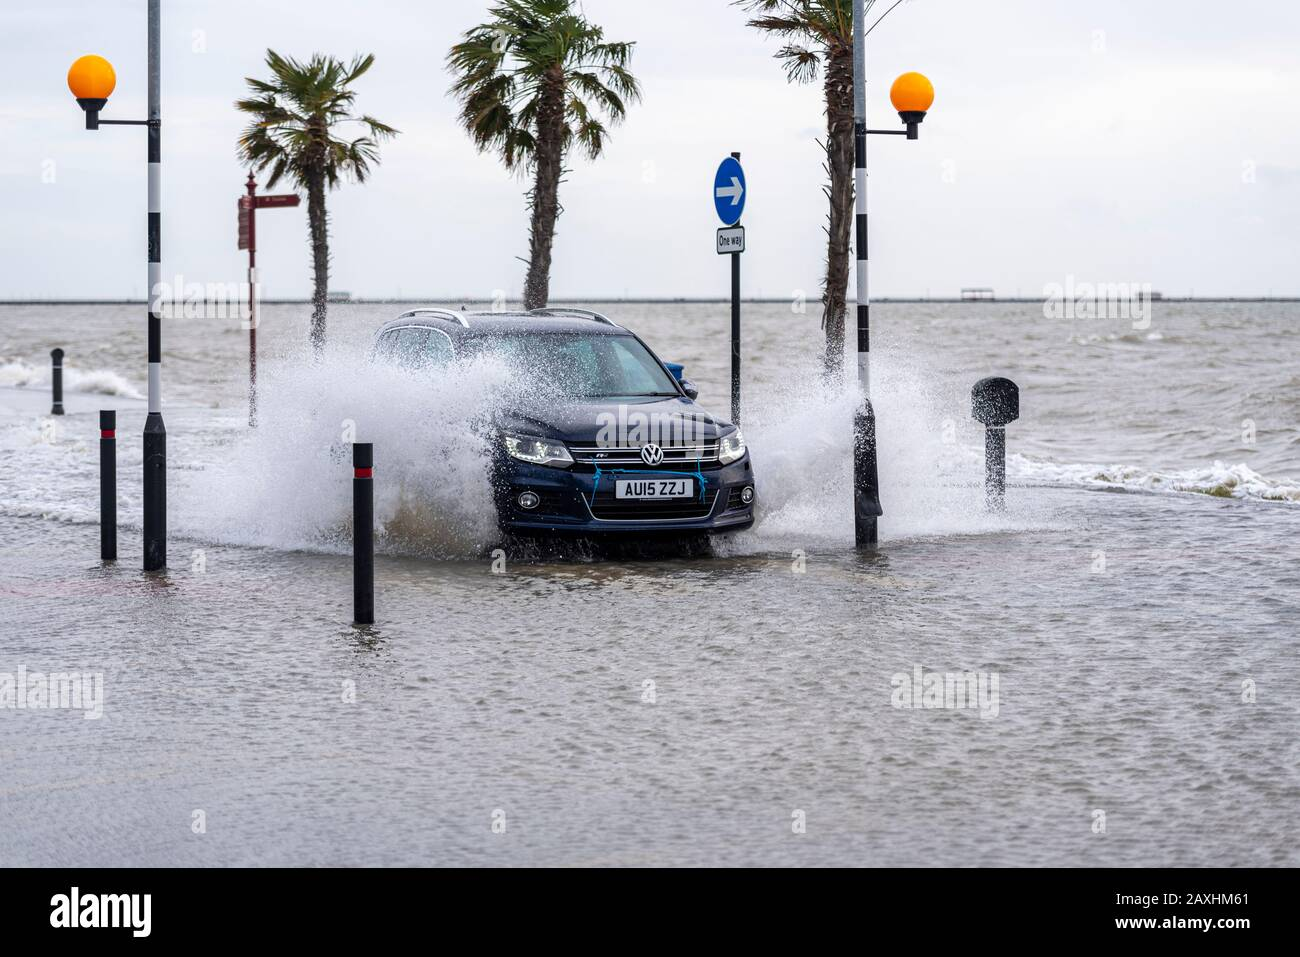 car-driving-through-floodwater-during-the-high-tide-storm-surge-following-storm-ciara-in-southend-on-sea-essex-uk-submerged-zebra-crossing-2AXHM61.jpg